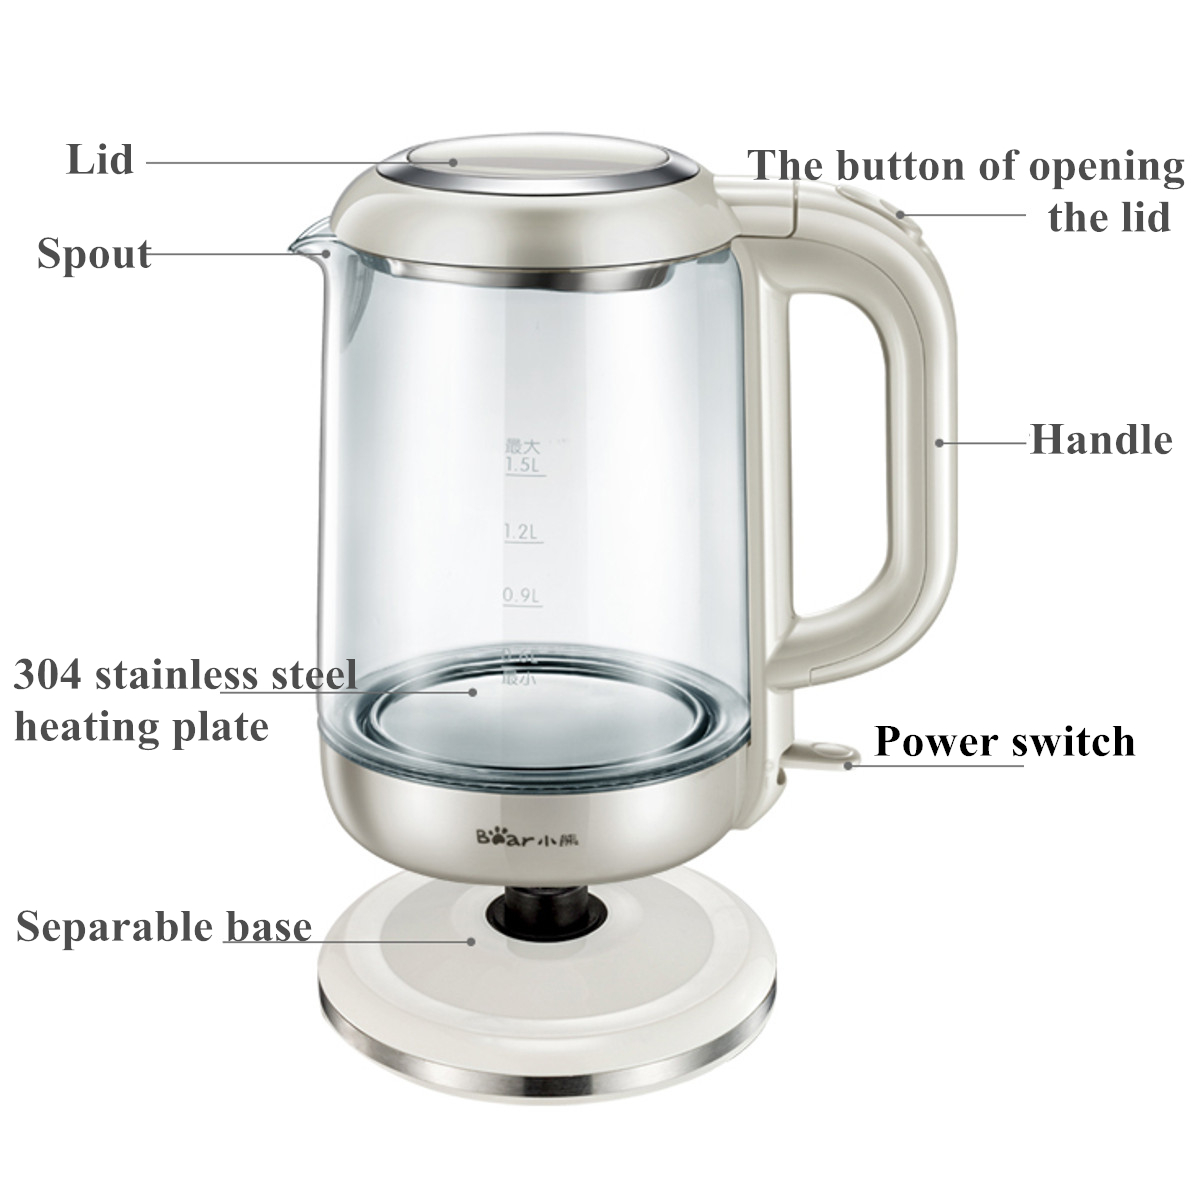 Bear ZDH-A15G2 1.5L Electric Glass Clear Tea Kettle Hot Water Boiler Stainless Steel Heater Pot Cordless Fast Boil BPA Free Stain Resist Kettle